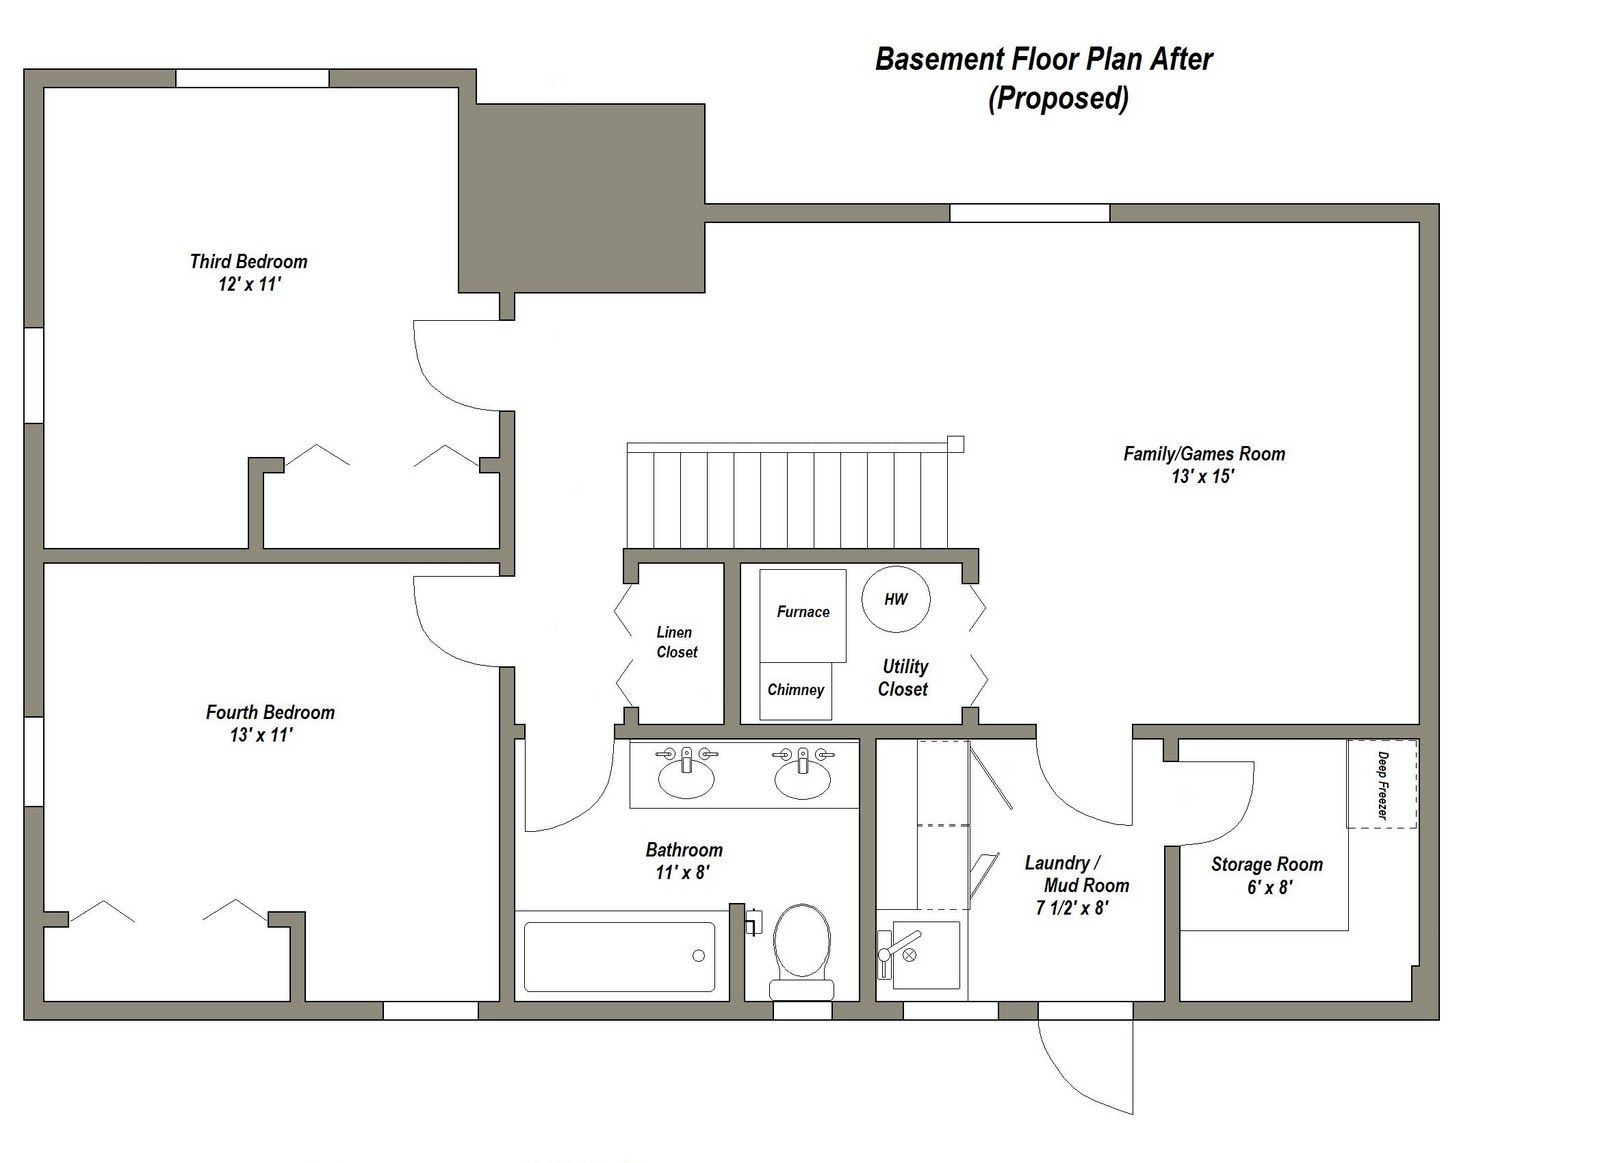 Plan For Finishing Our Basement Basement Floor Plans Basement House Plans House Floor Plans